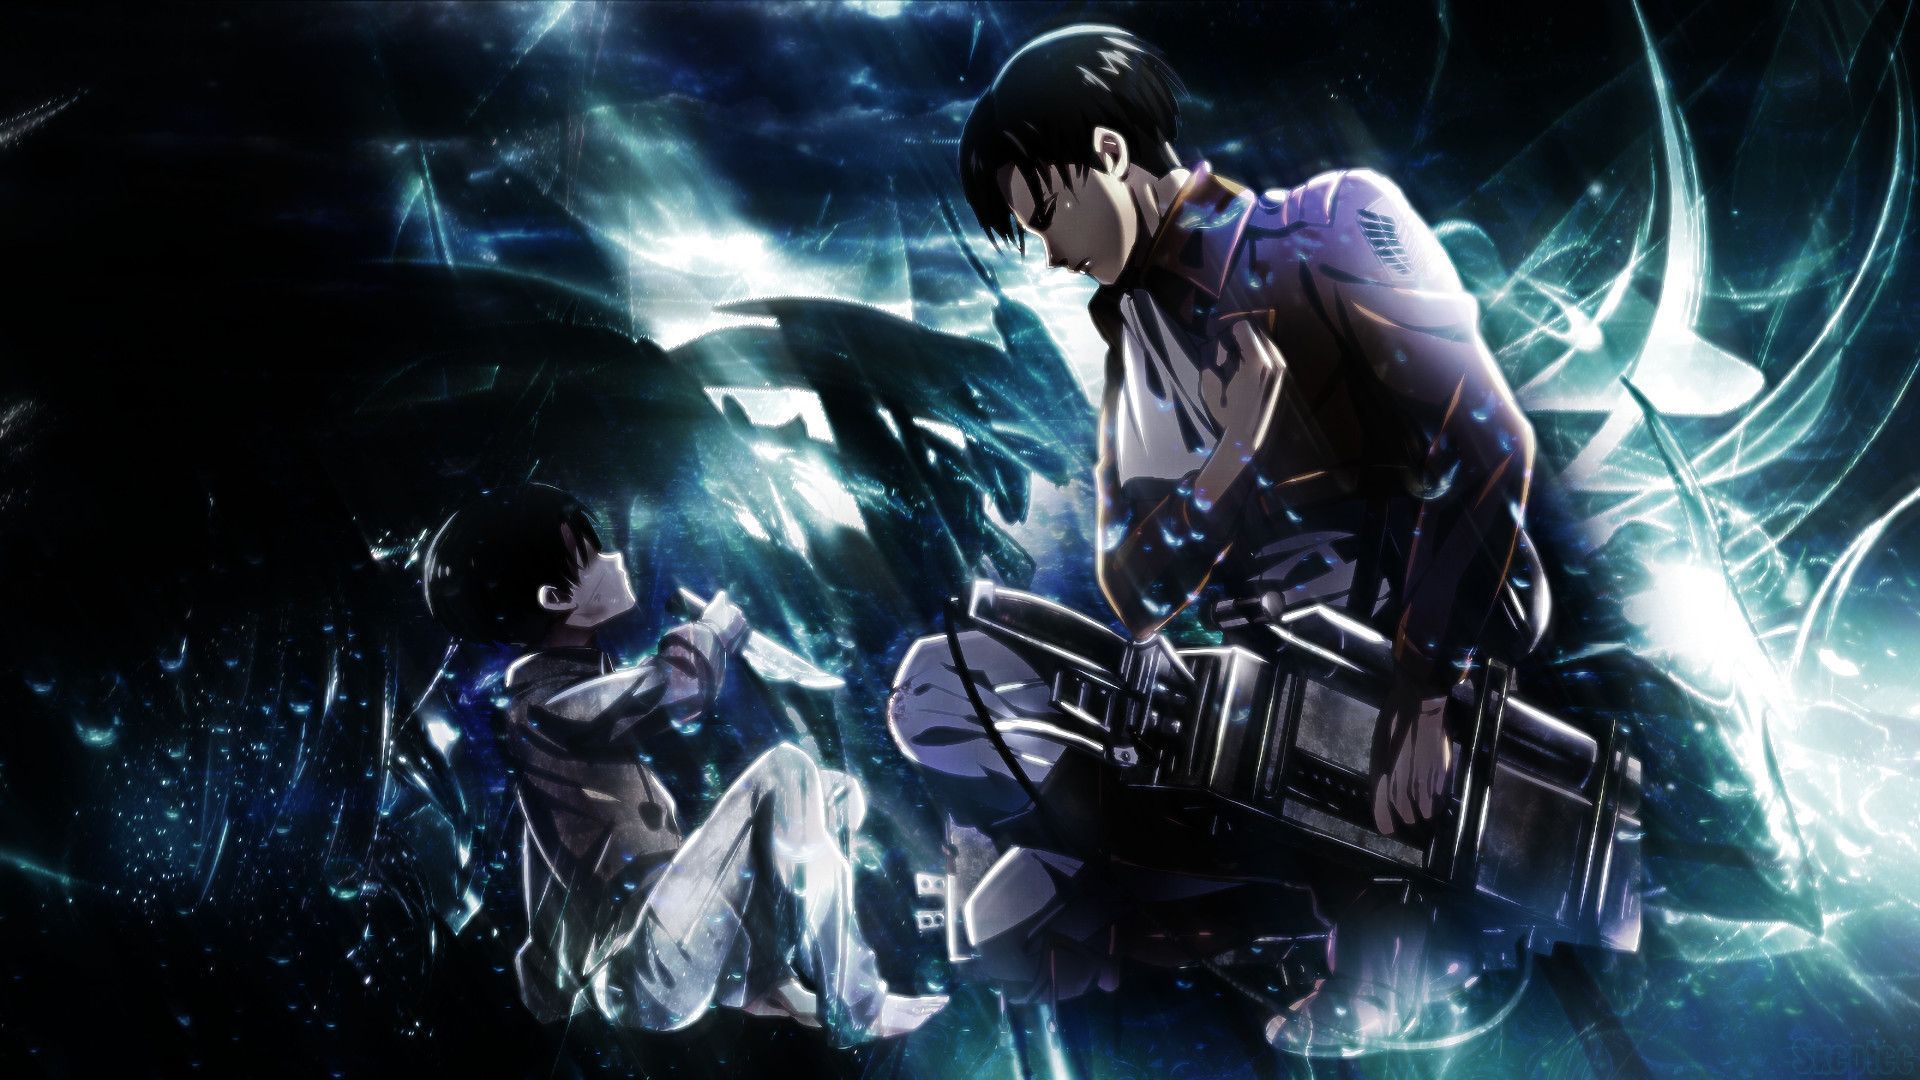 Attack On Titan Levi Wallpapers Top Free Attack On Titan Levi Backgrounds Wallpaperaccess